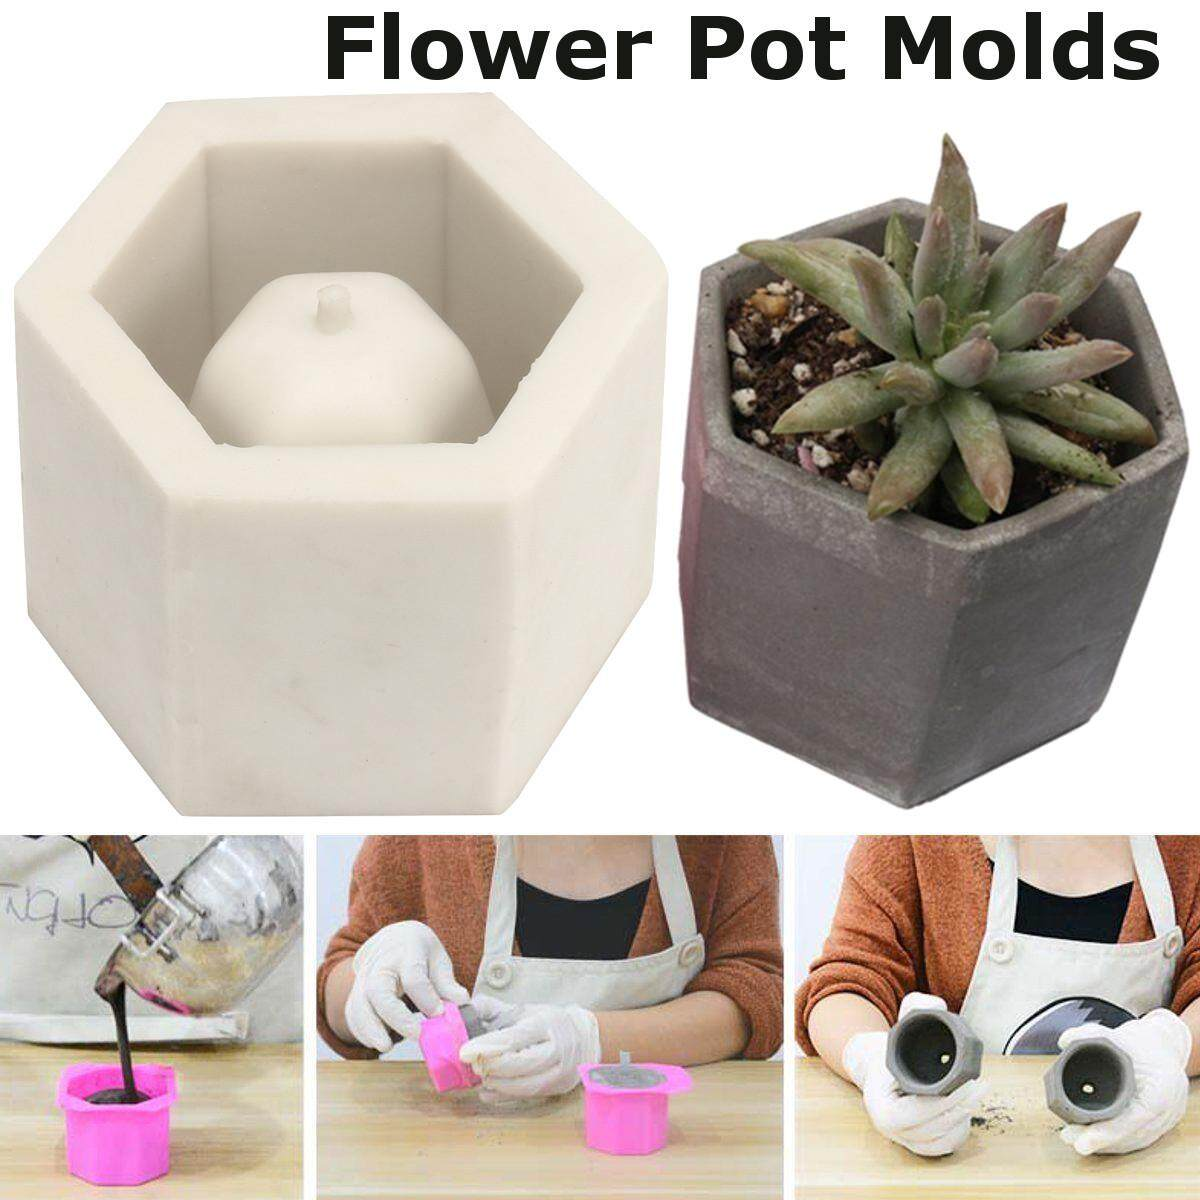 JM hexagon flower pot mold silicone mold for vase cement concrete silicone mould